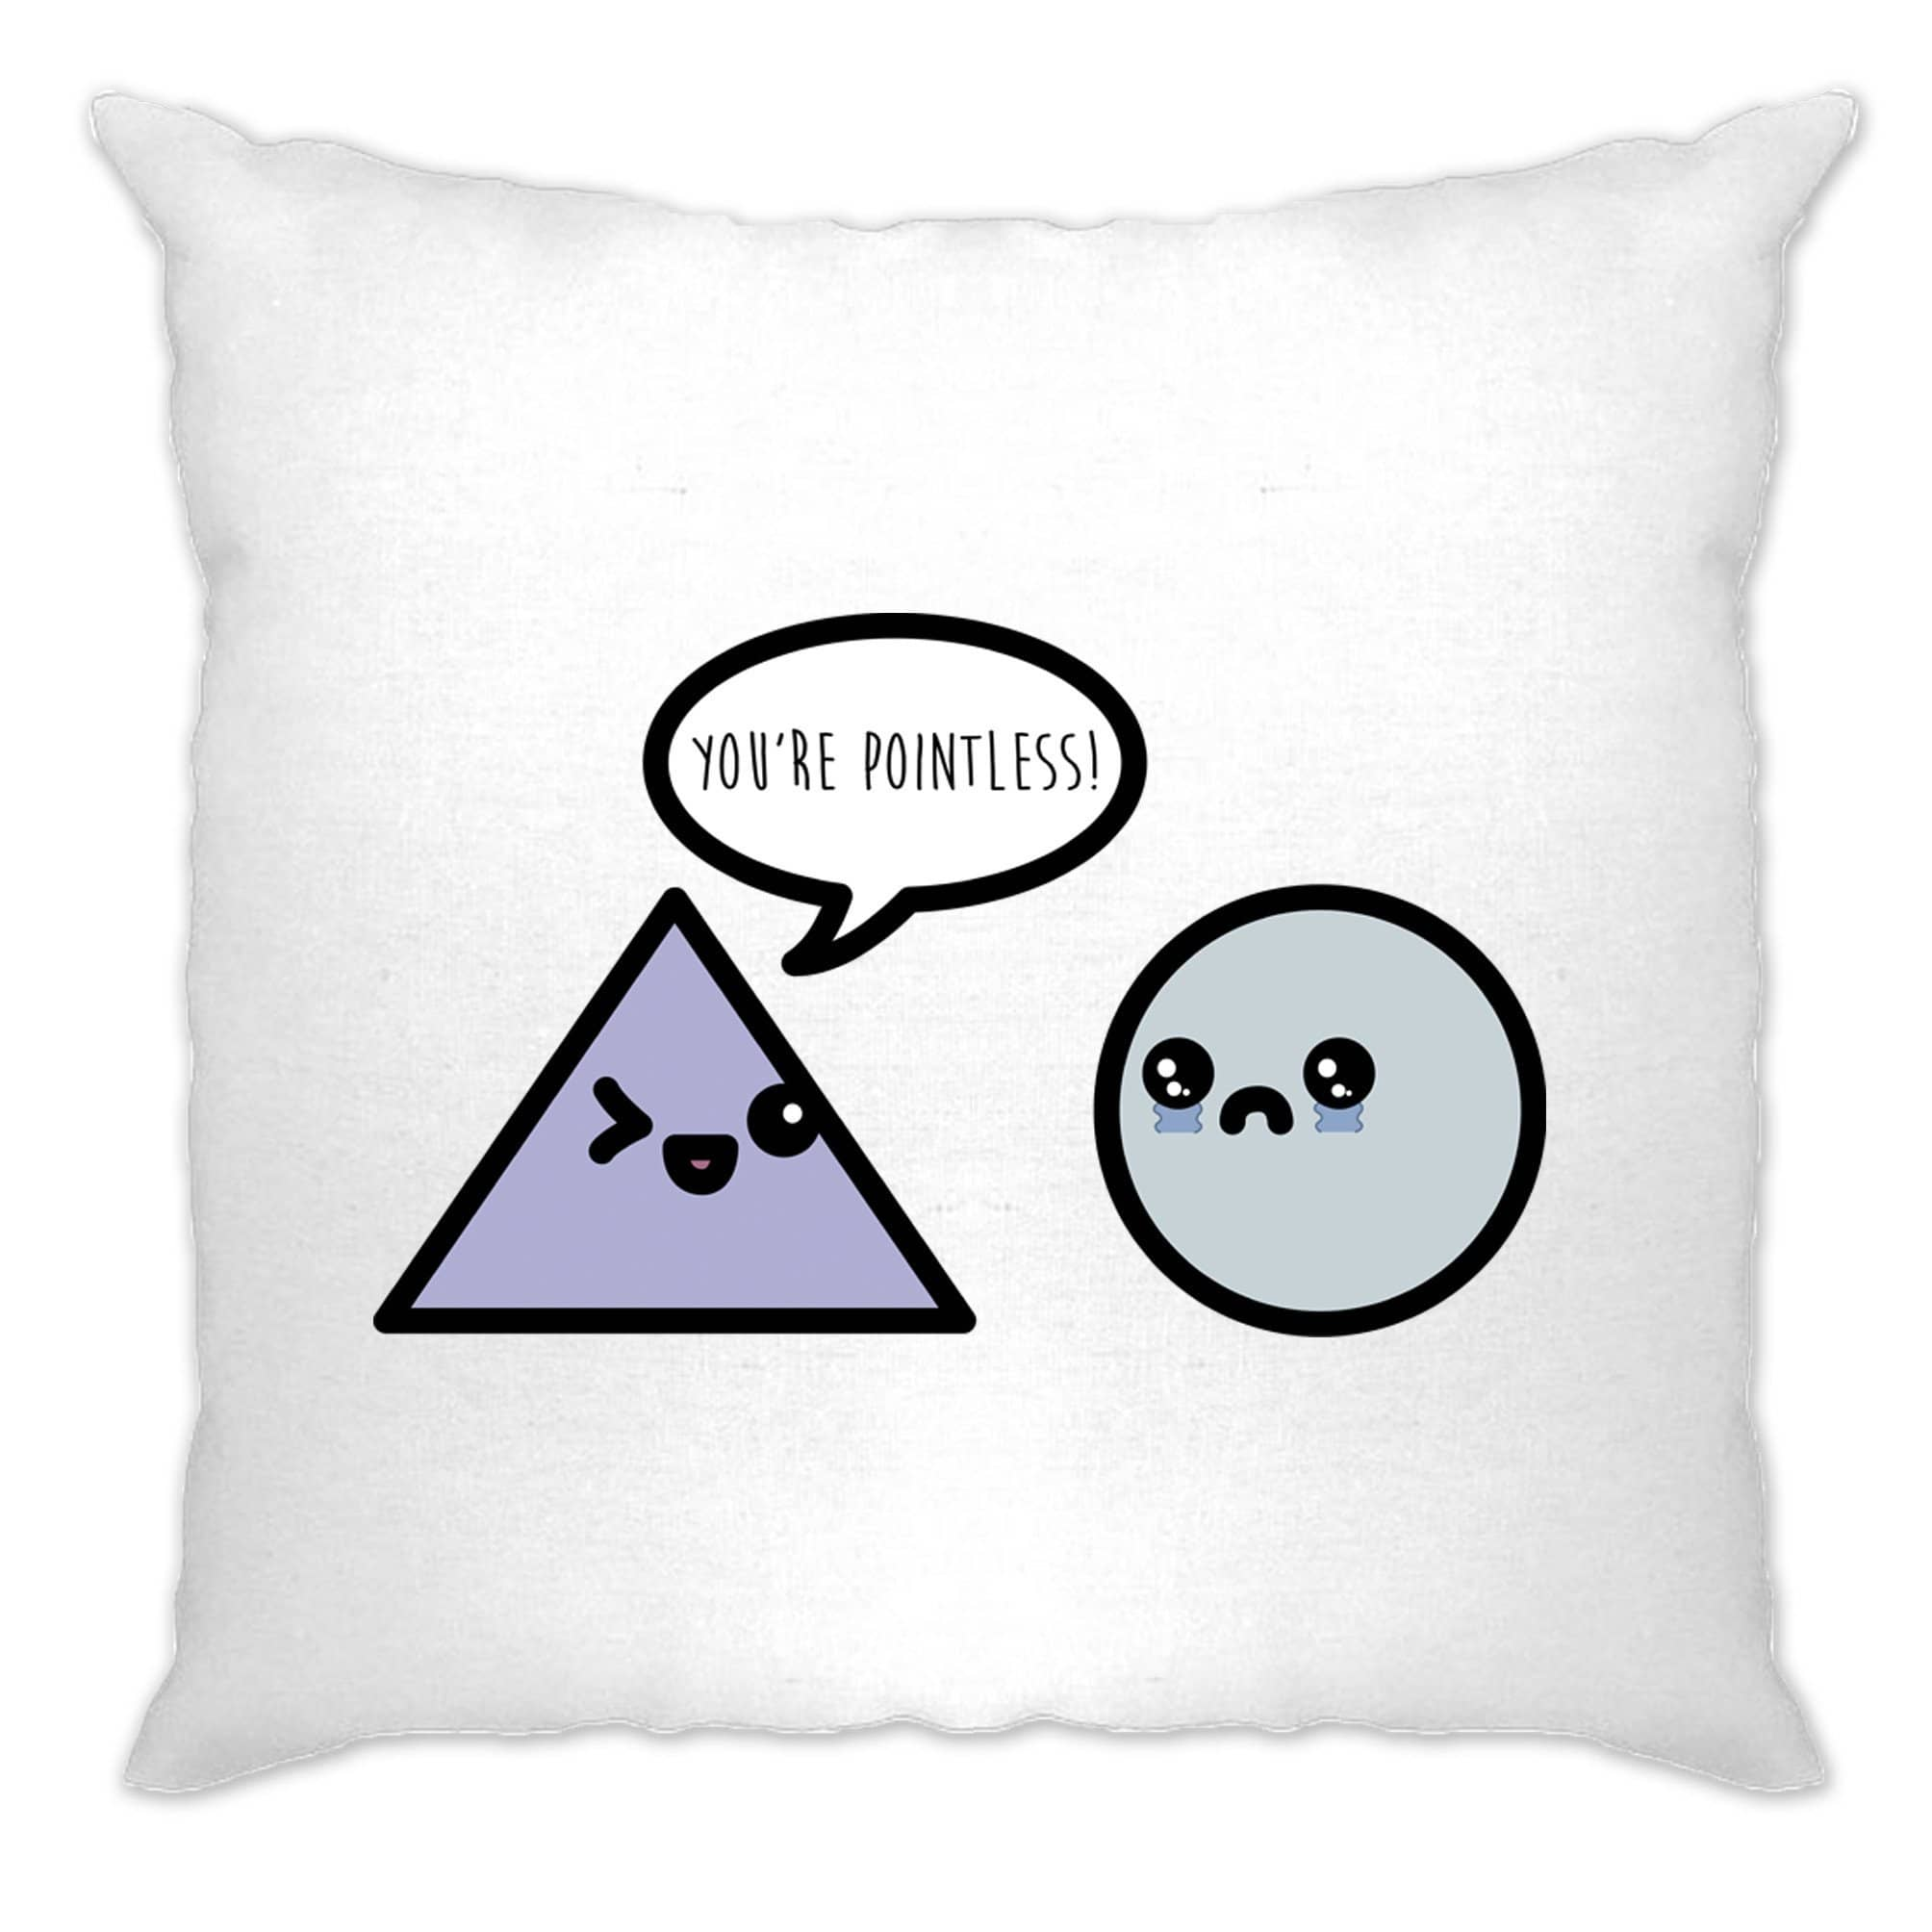 Novelty Math Cushion Cover You're Pointless Joke